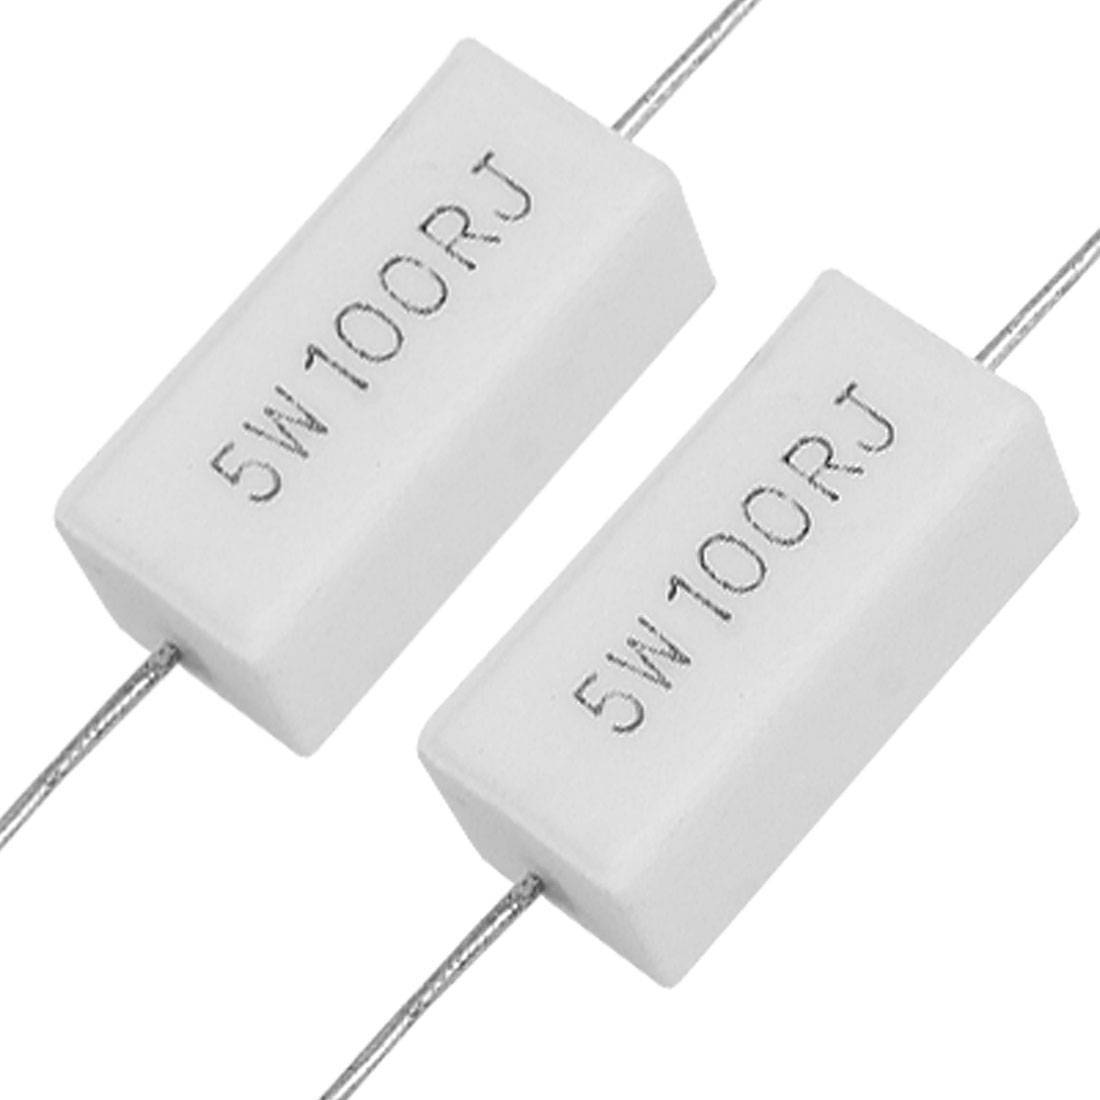 5Watt, 0.2W, Fifth Watt 100 Ohm 5% Ceramic Cement Power Resistor